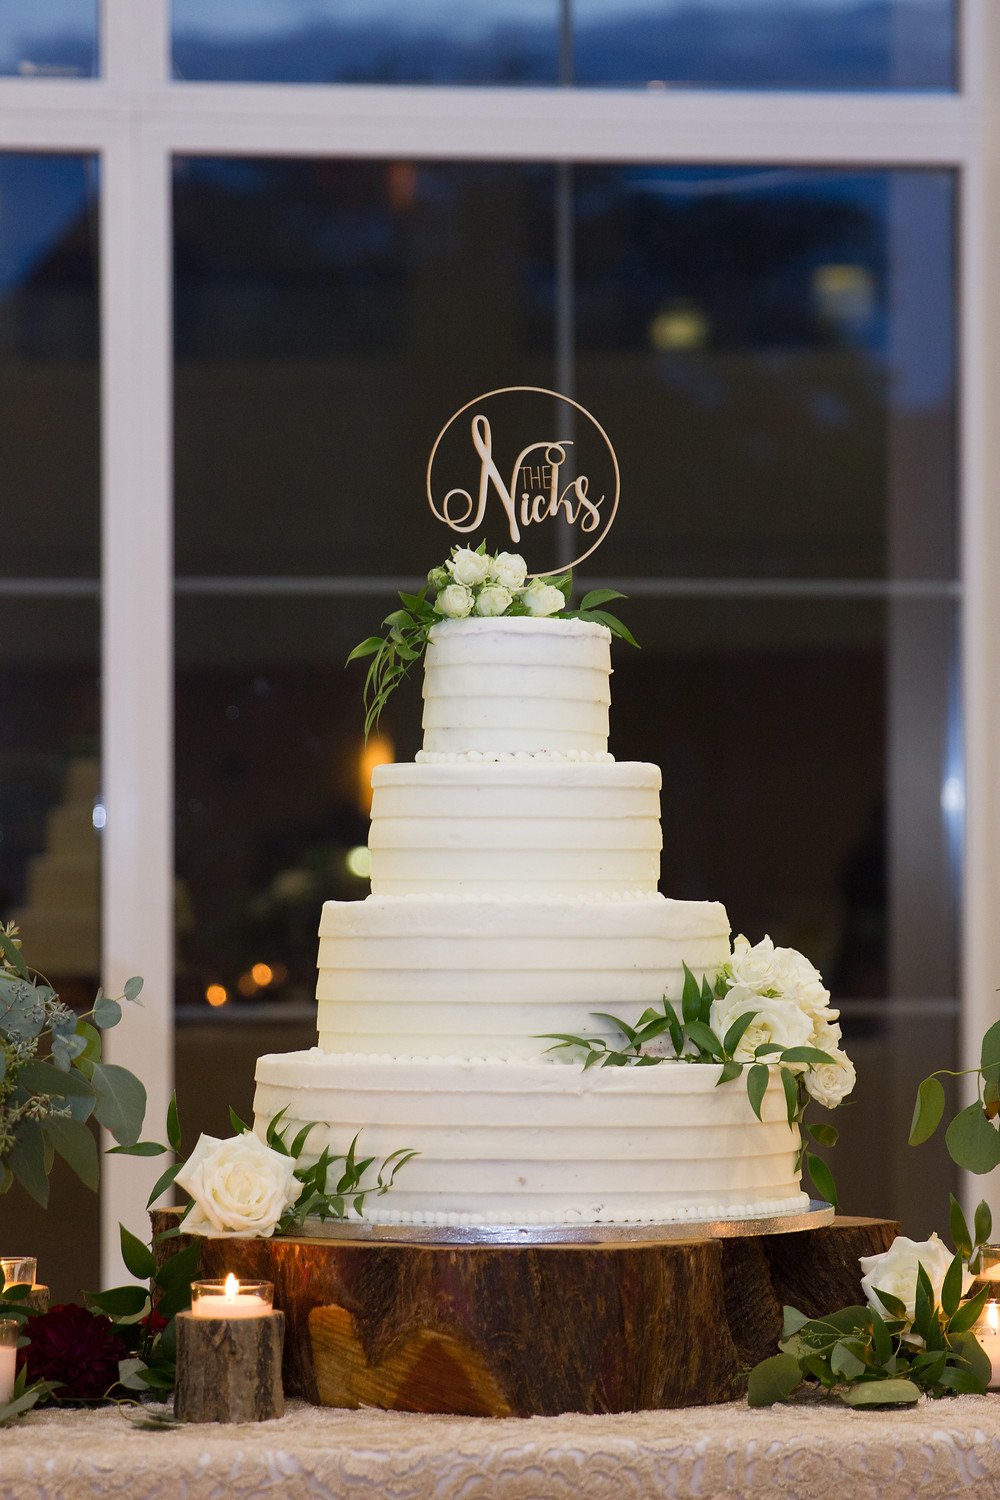 wedding cake, columbia mo, missouri wedding, photography, photographer, greenery, cake topper, reception,